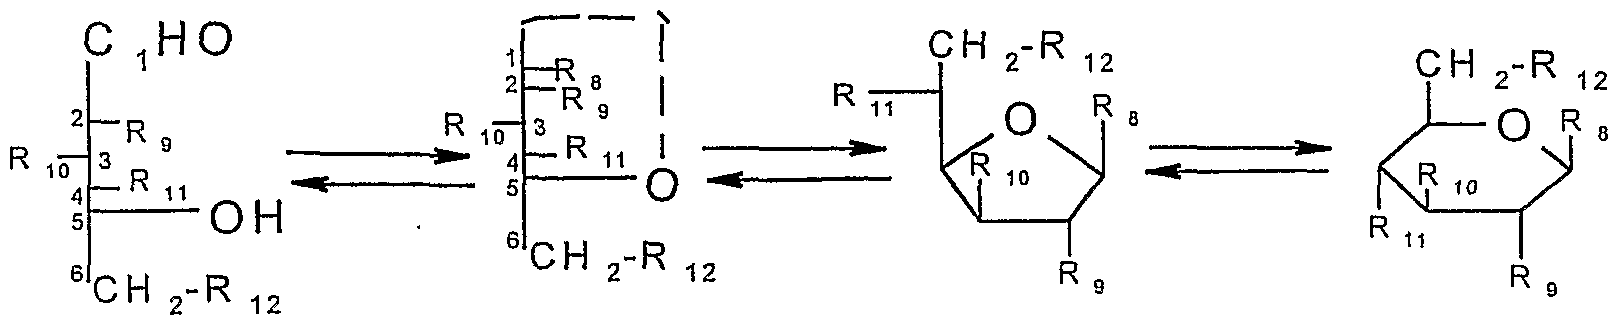 Alpha D Galactose Fischer Projection Figure imgf000017 0001